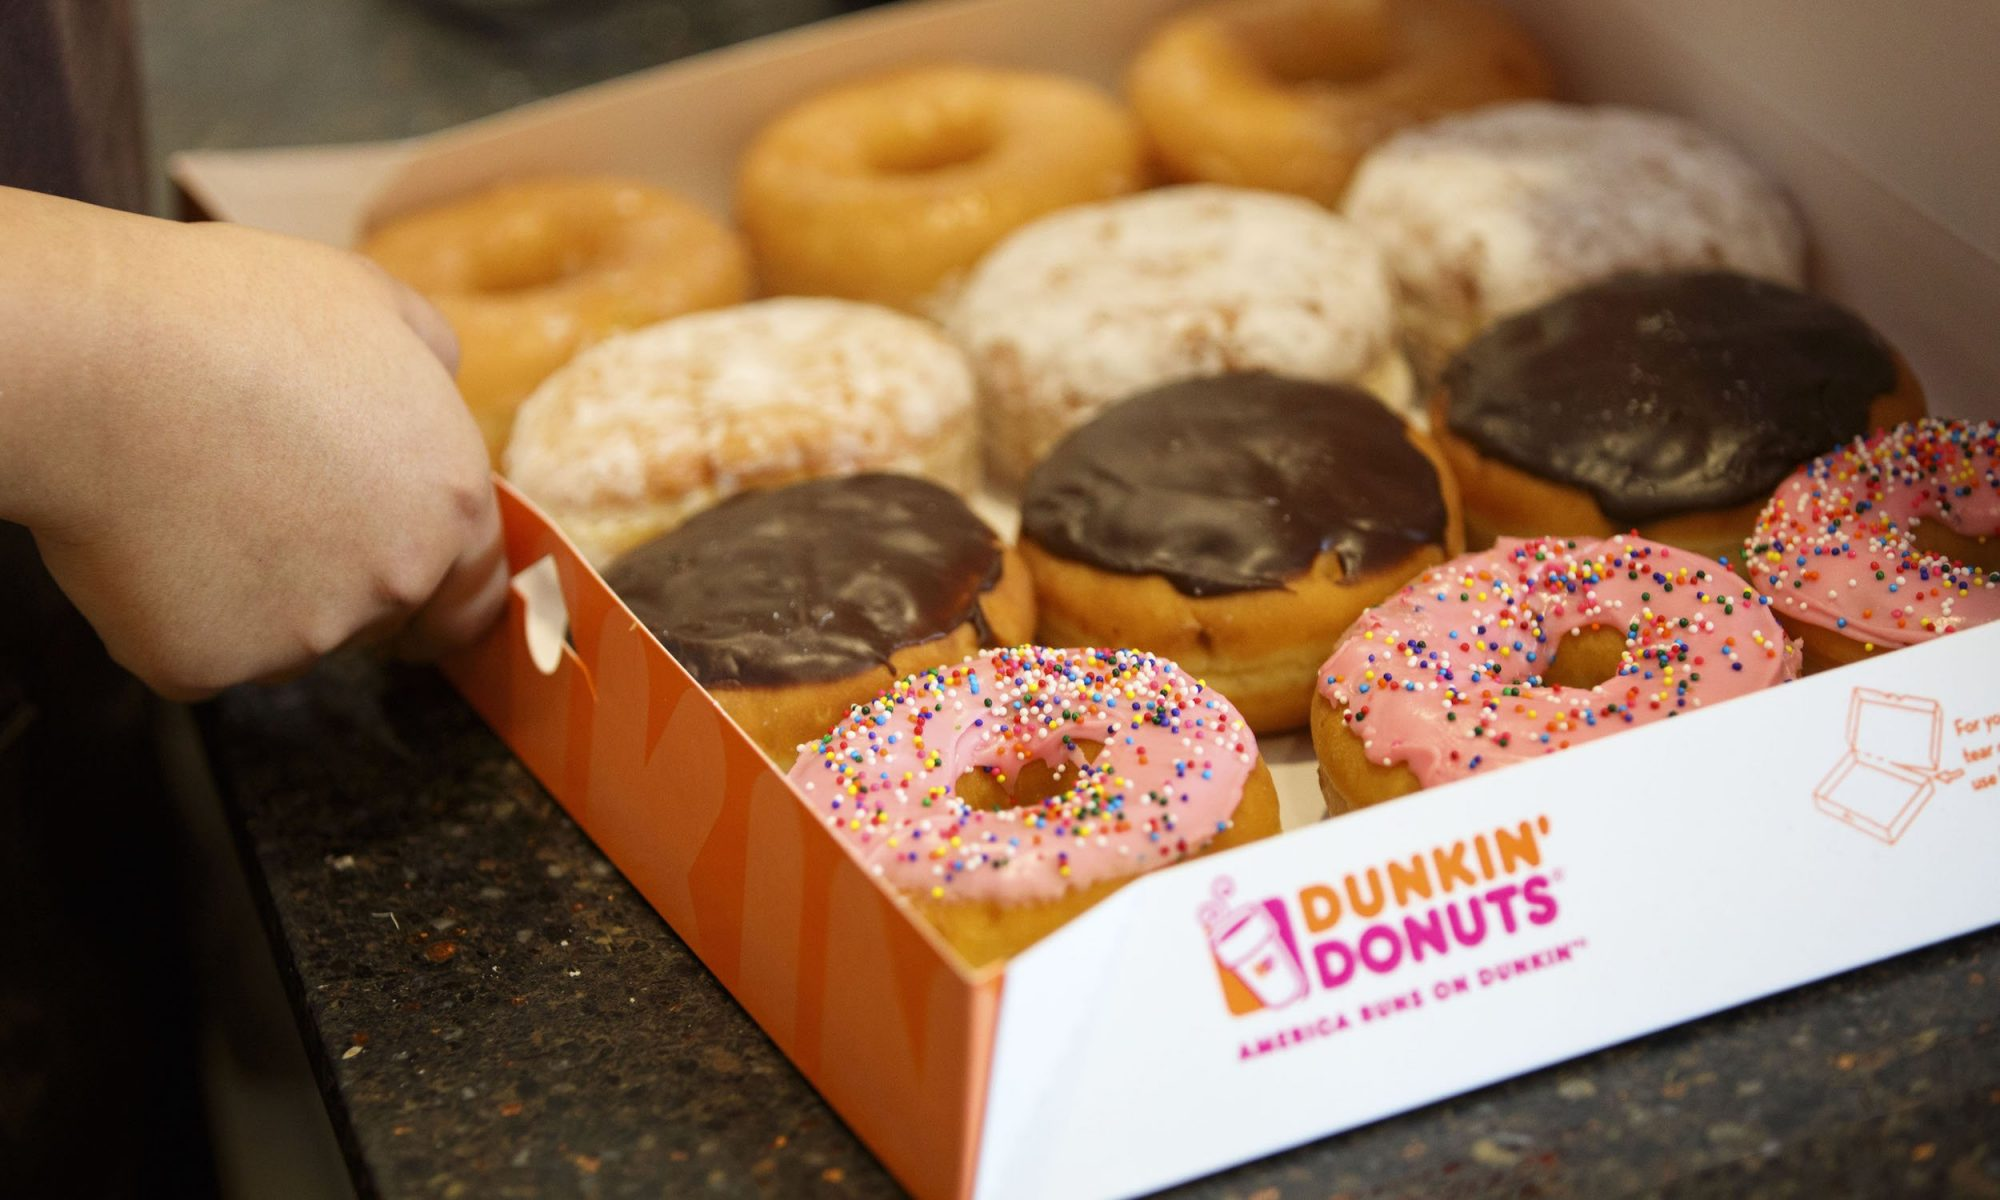 Dunkin' debuts a mobile order drive-thru at its new concept store